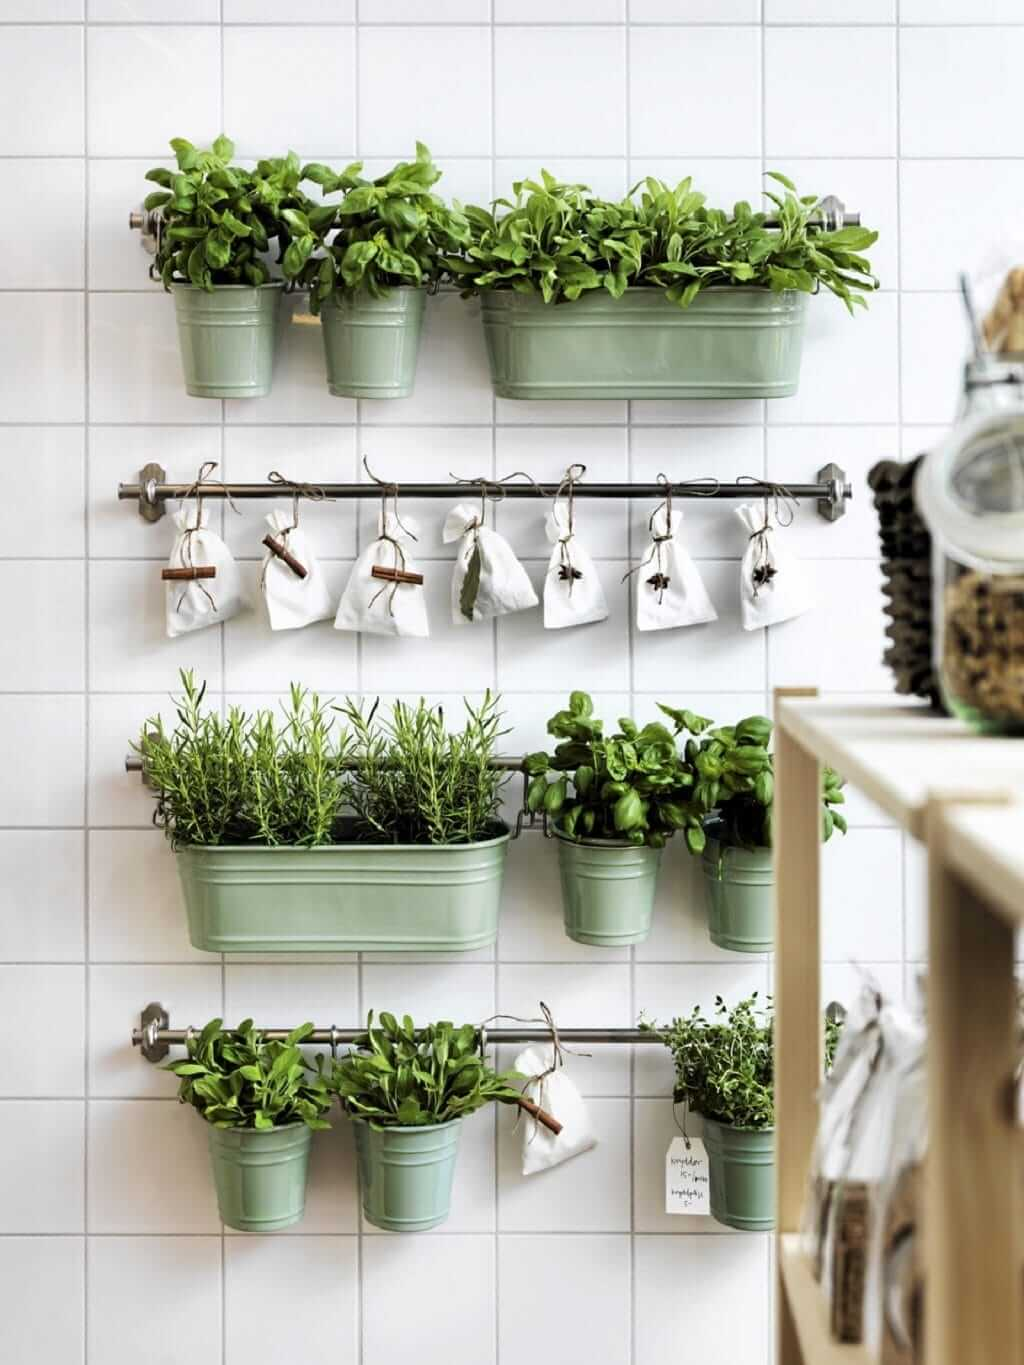 Charmant DIY Small Space Kitchen Herb Garden